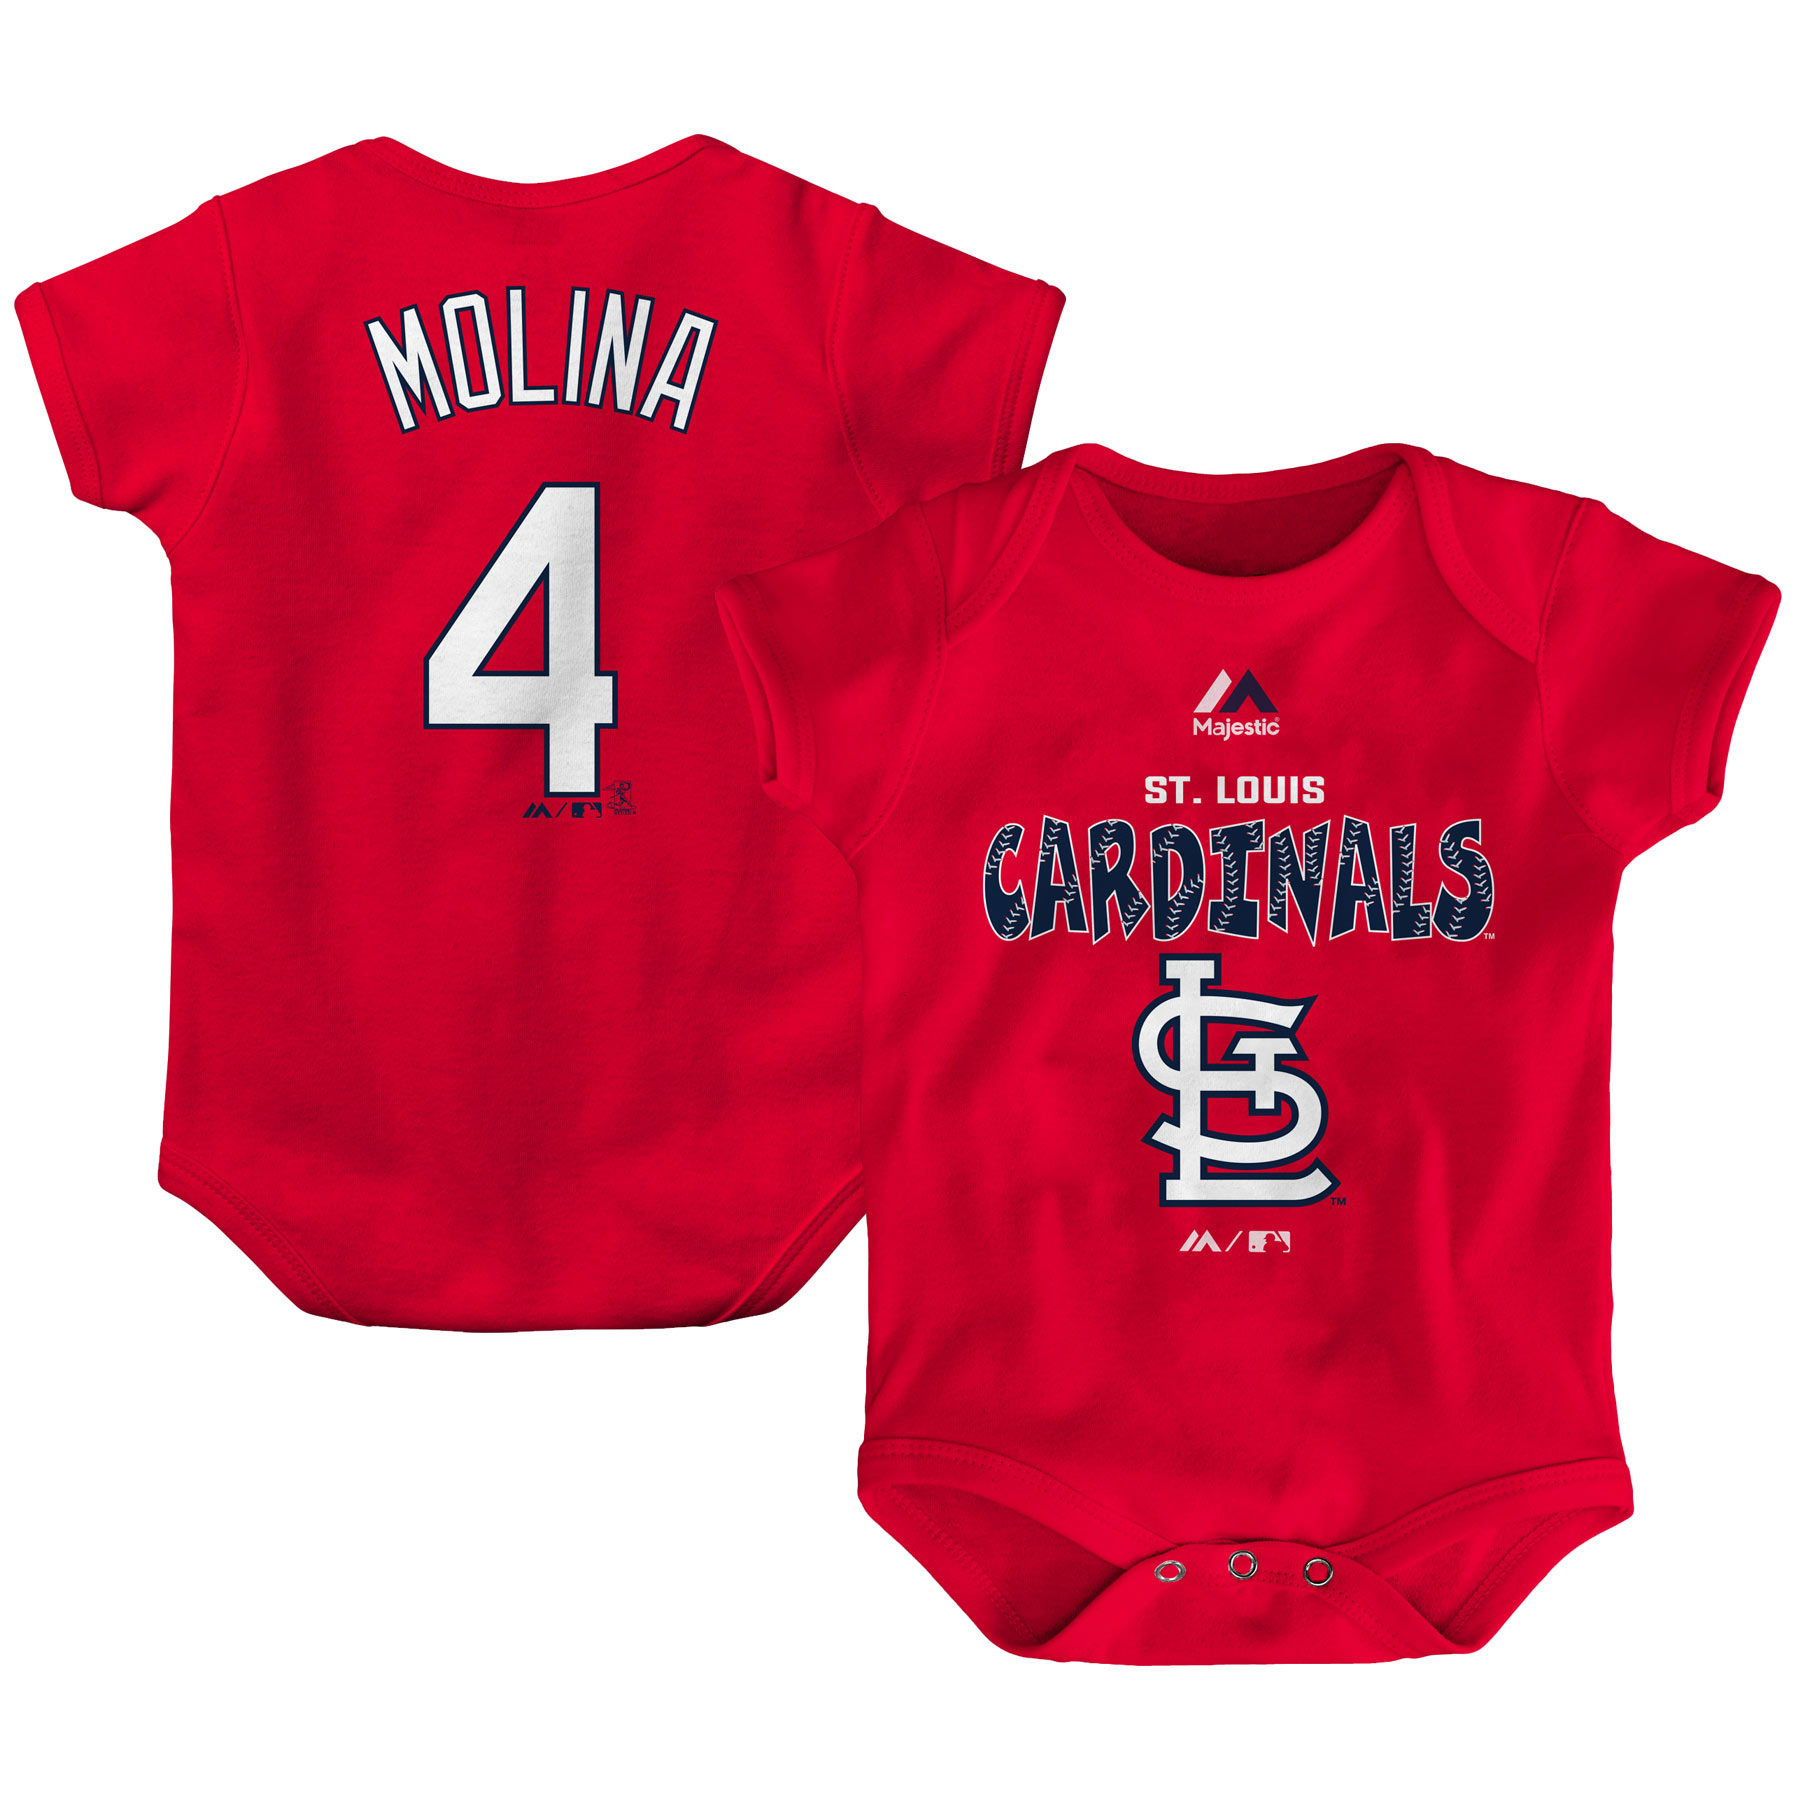 Yadier Molina St. Louis Cardinals Majestic Newborn & Infant Stitched Player Name & Number Bodysuit - Red